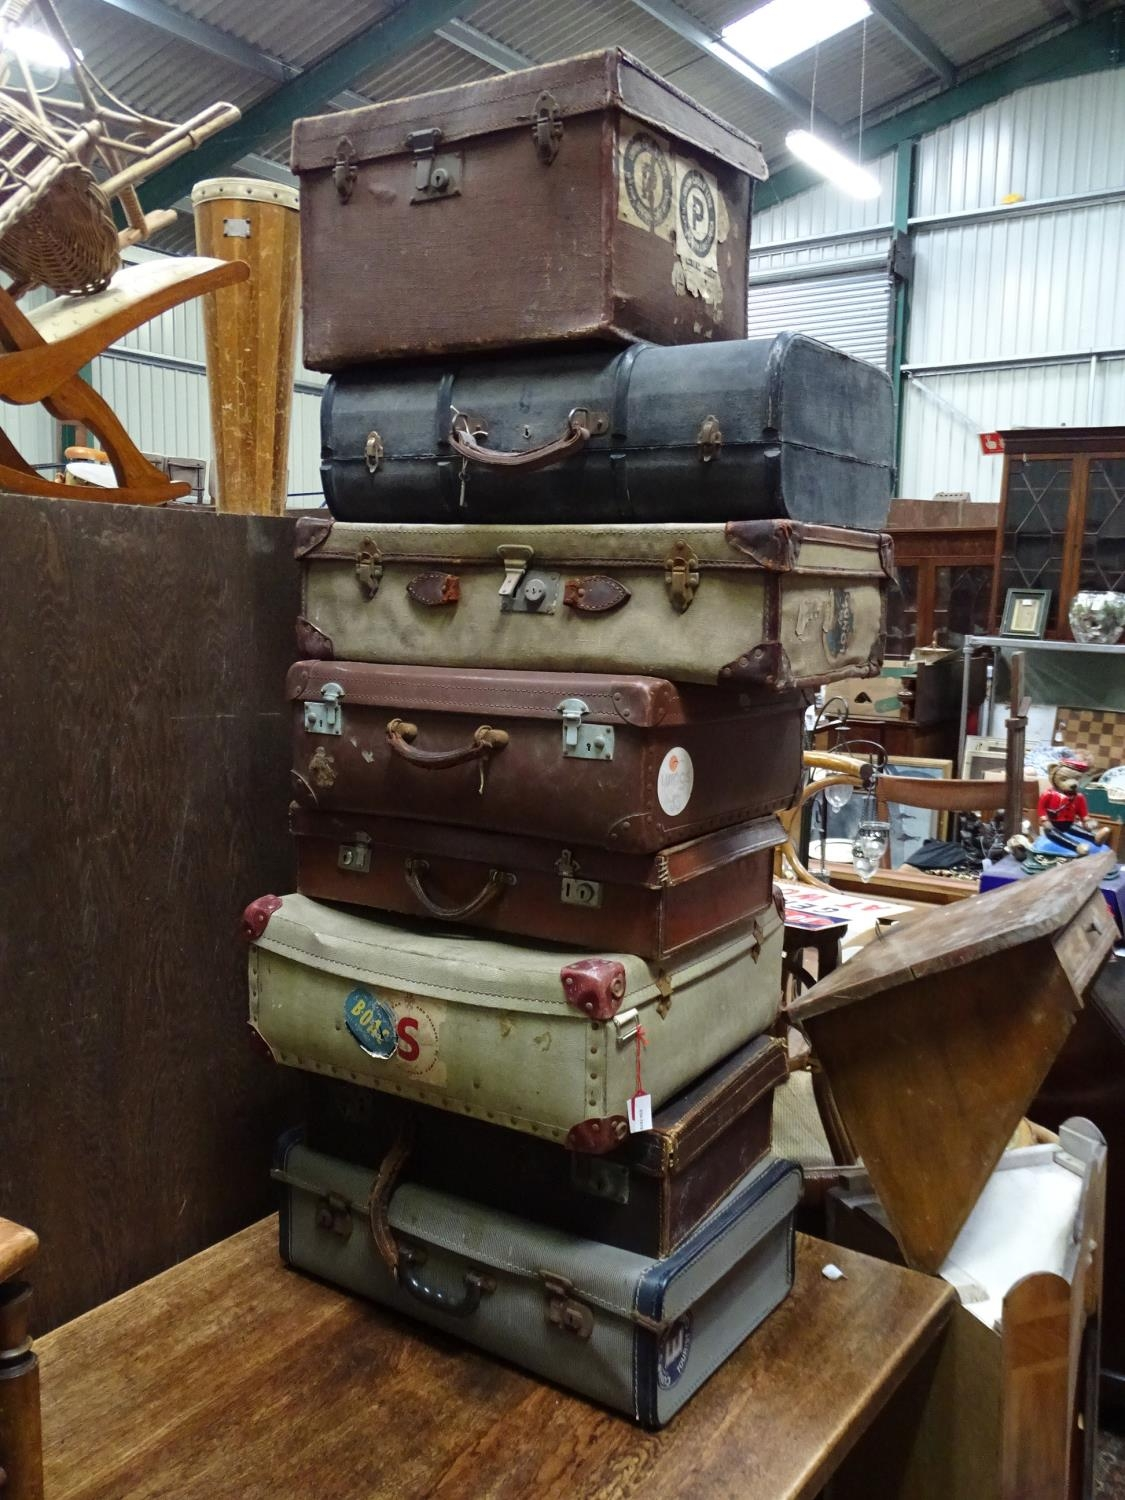 Eight vintage trunks / suitcases with old tourist labels (8) Please Note - we do not make